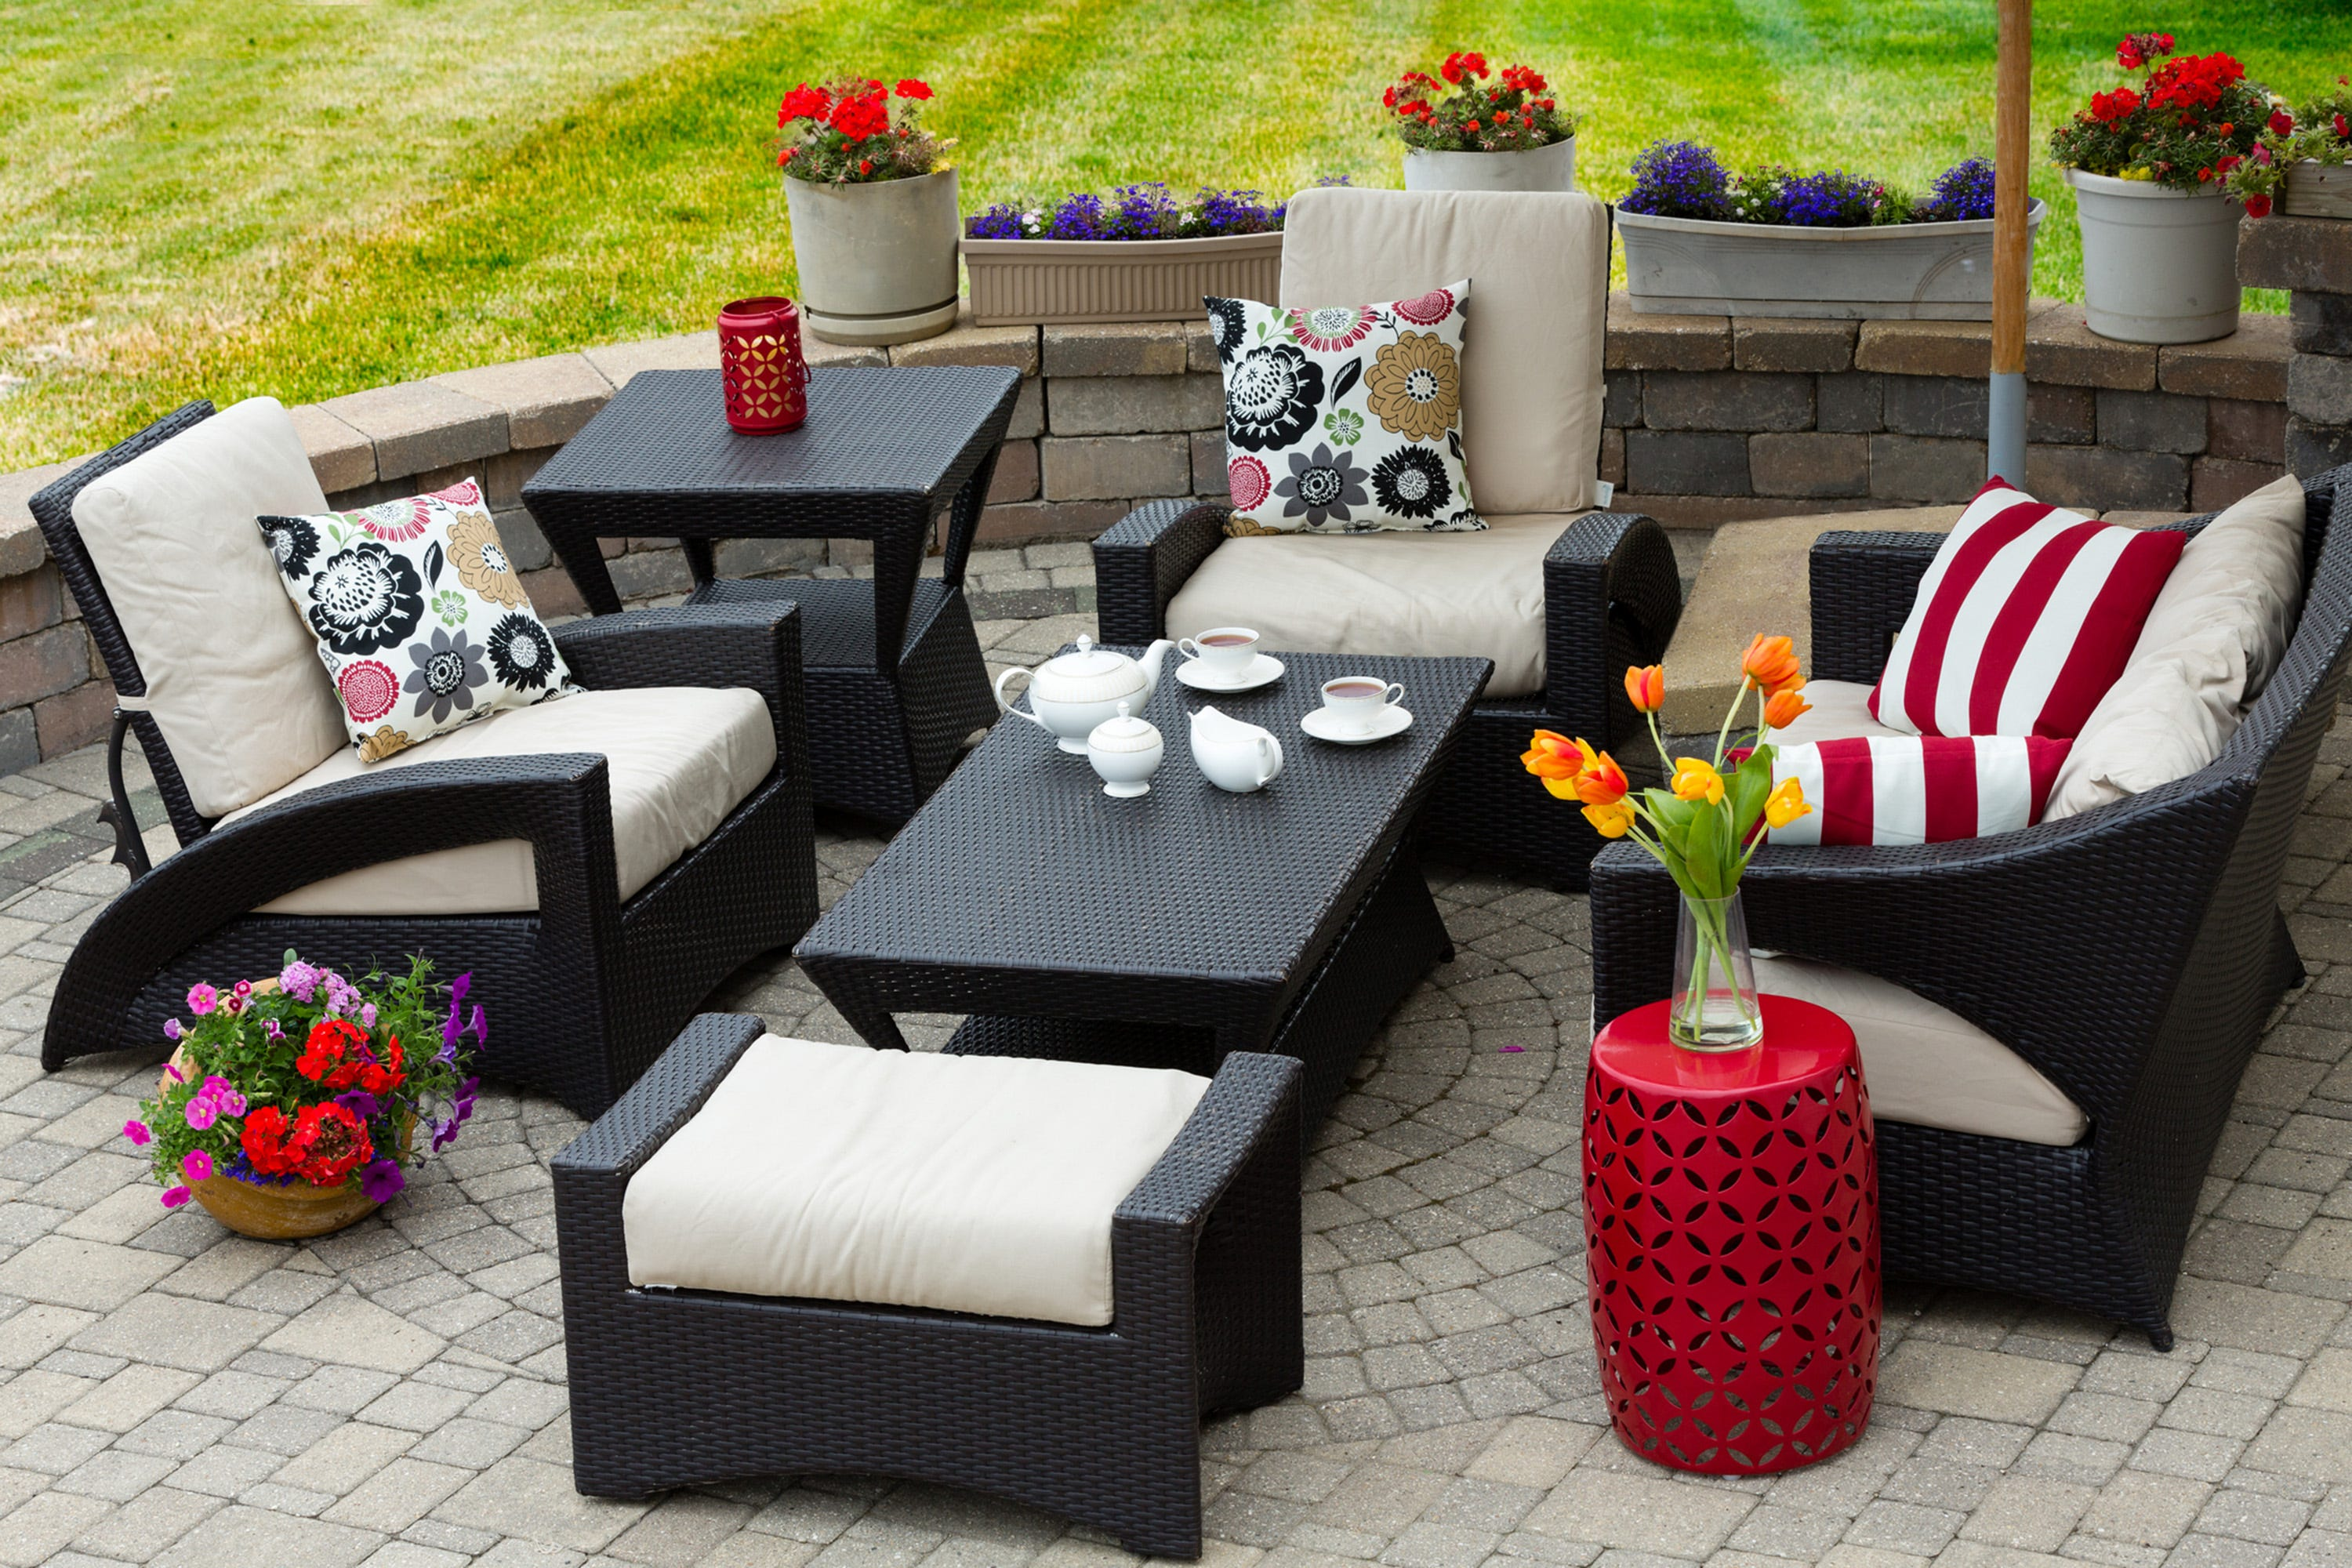 Proper Care And Cleaning Can Keep Your Patio Furniture Looking New For  Years To Come. (Dreamstime) (Photo: Dreamstime, TNS)